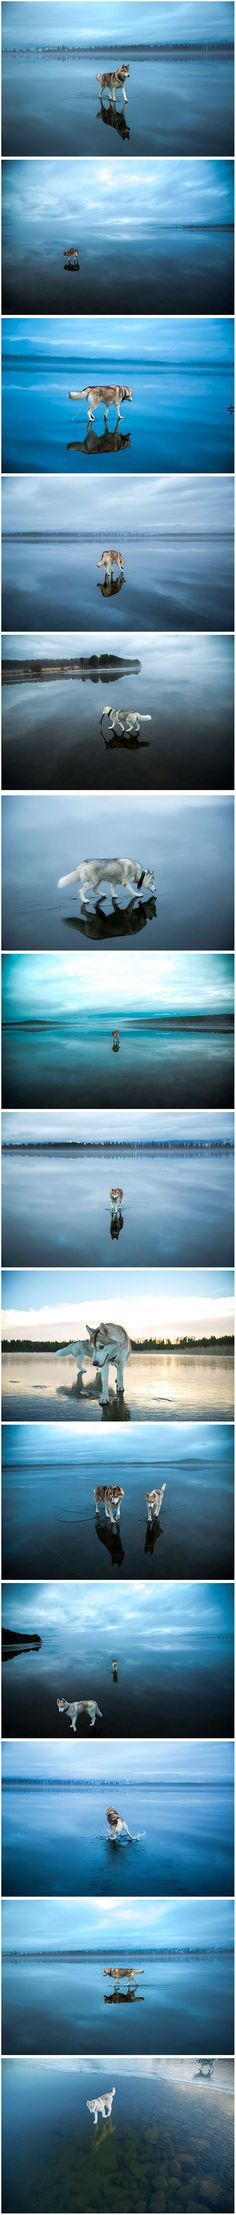 A photographer in Russia who goes by Fox Grom has captured some stunning images of his Siberian Huskies playing on a thawing frozen lake, which makes them seem like they're walking on a giant mirror or on the sky itself.